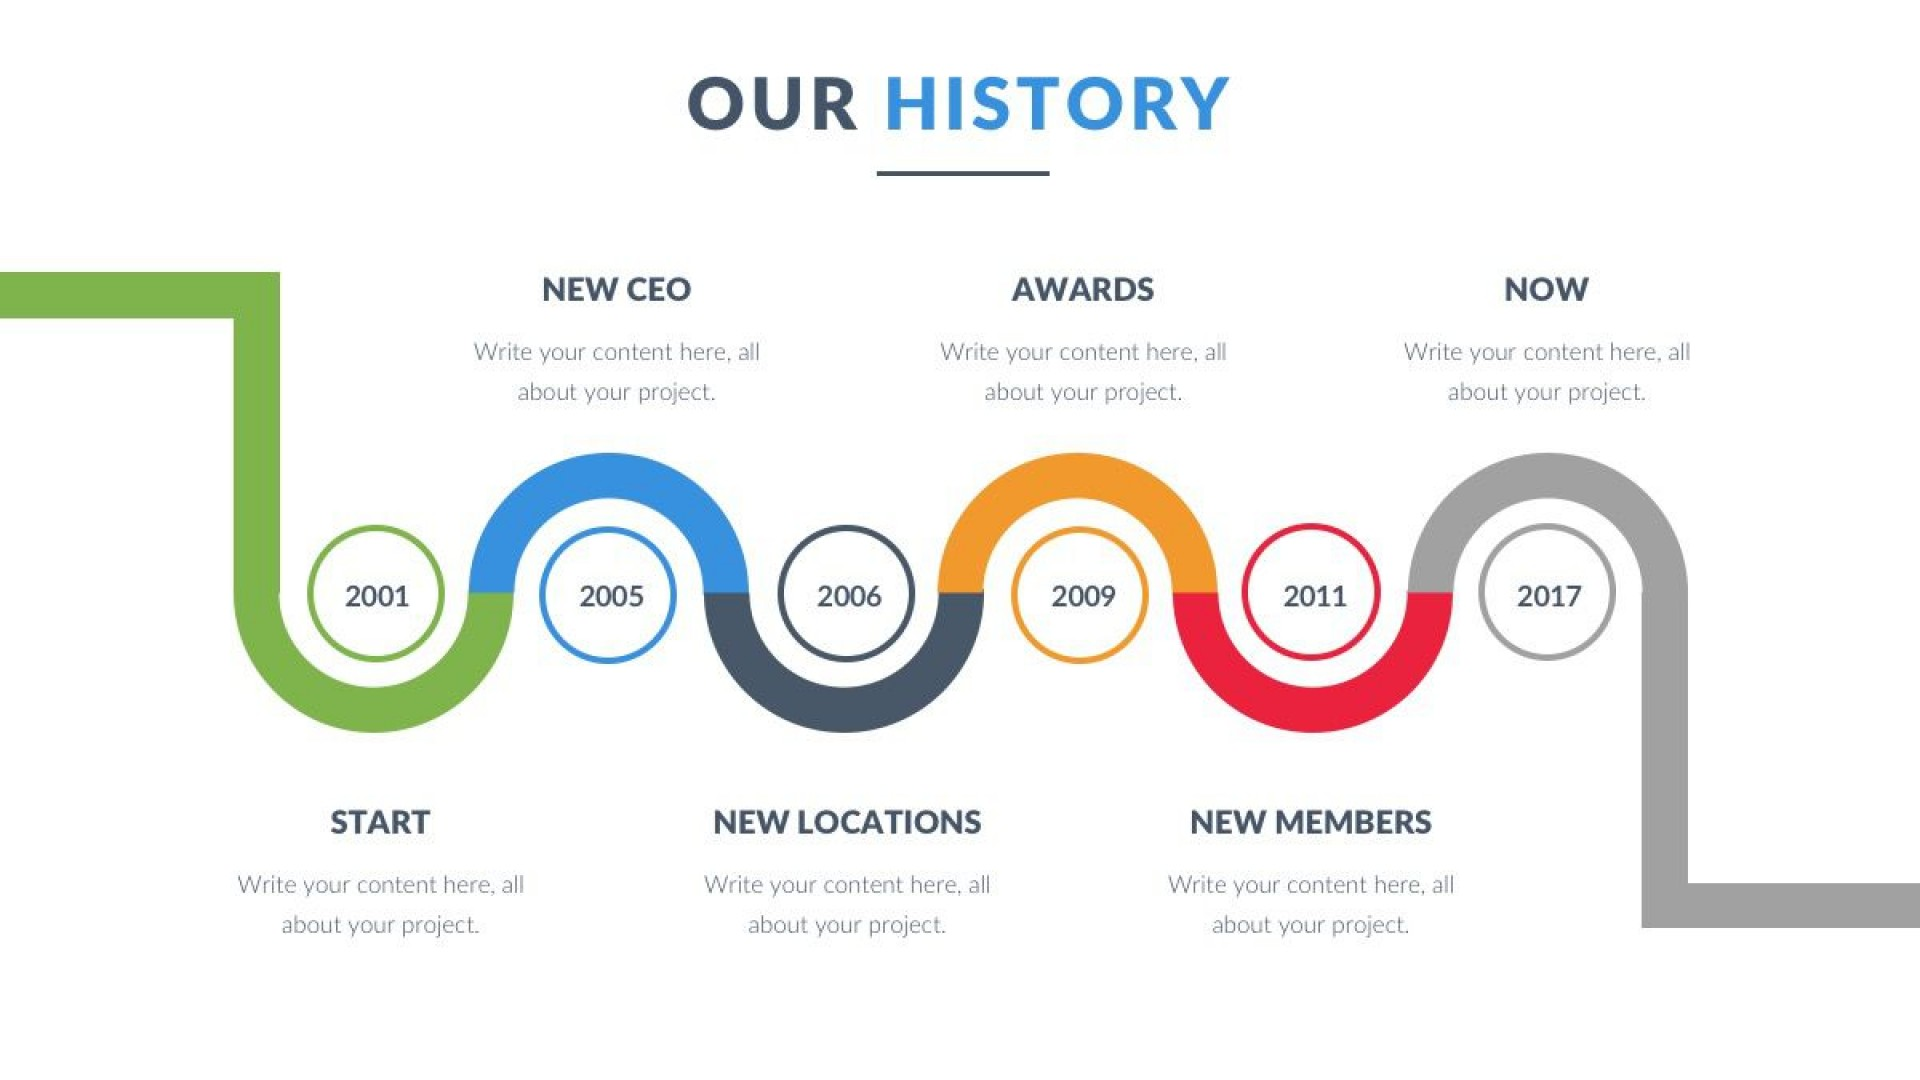 009 Incredible Timeline Powerpoint Template Download Free Example  Project Animated1920